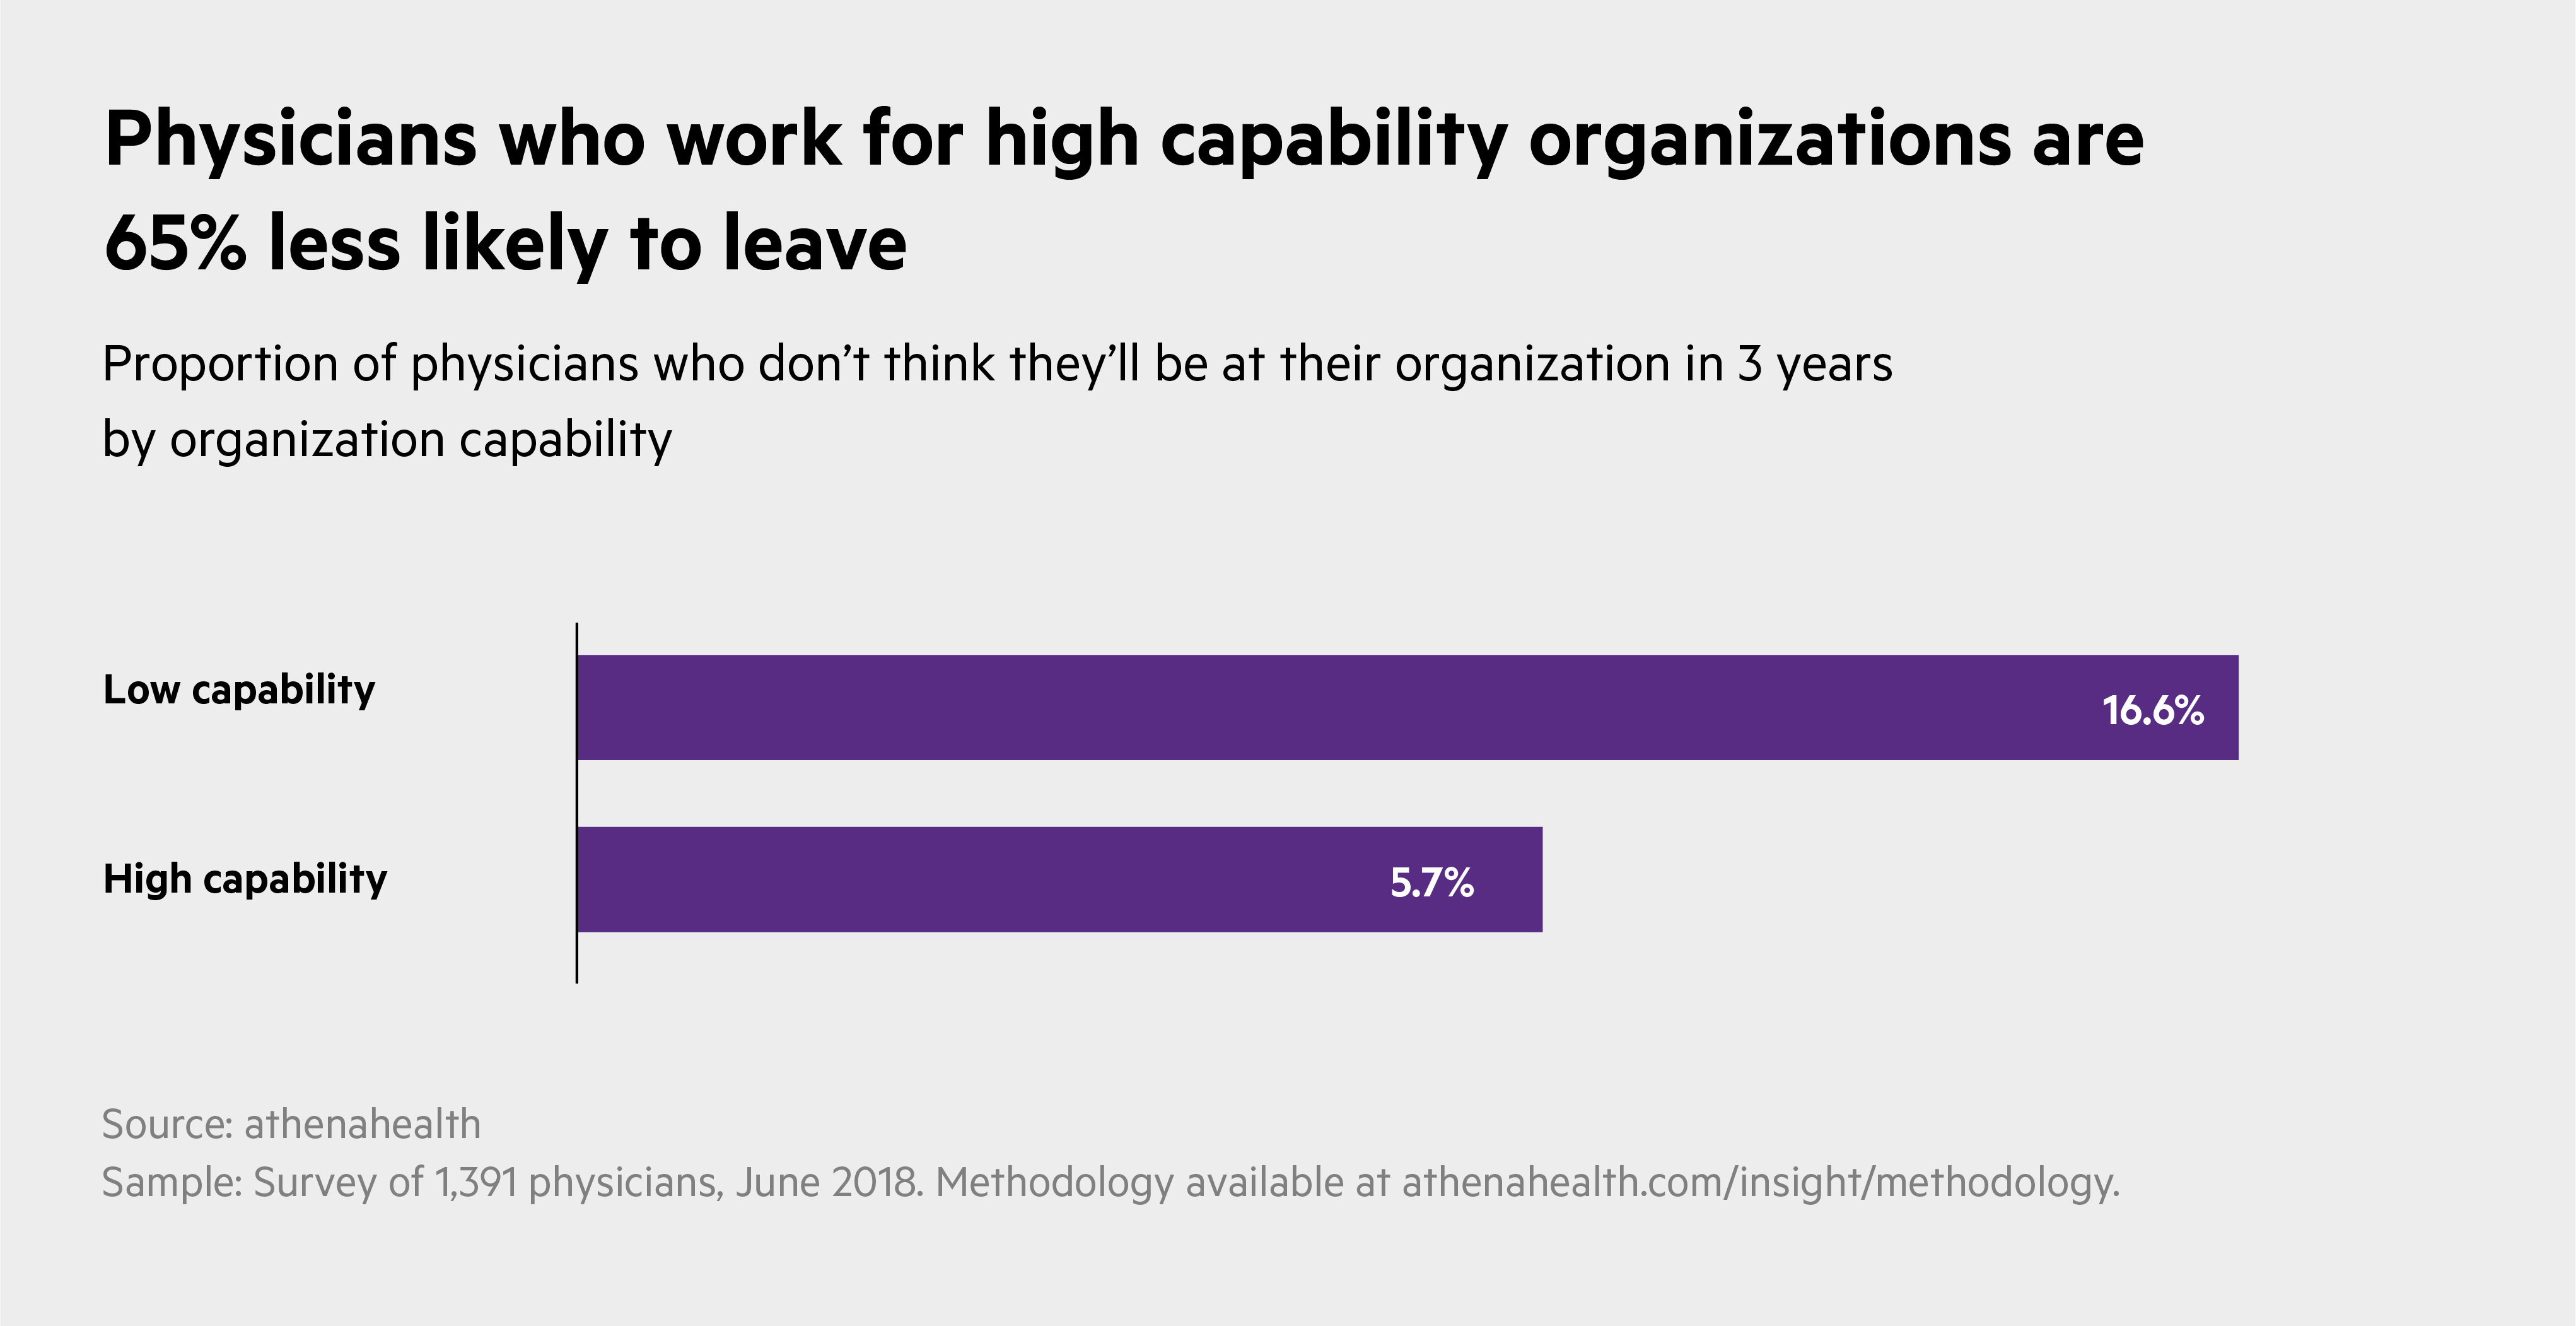 Physicians who work for high capability organizations are 65% less likely to leave.